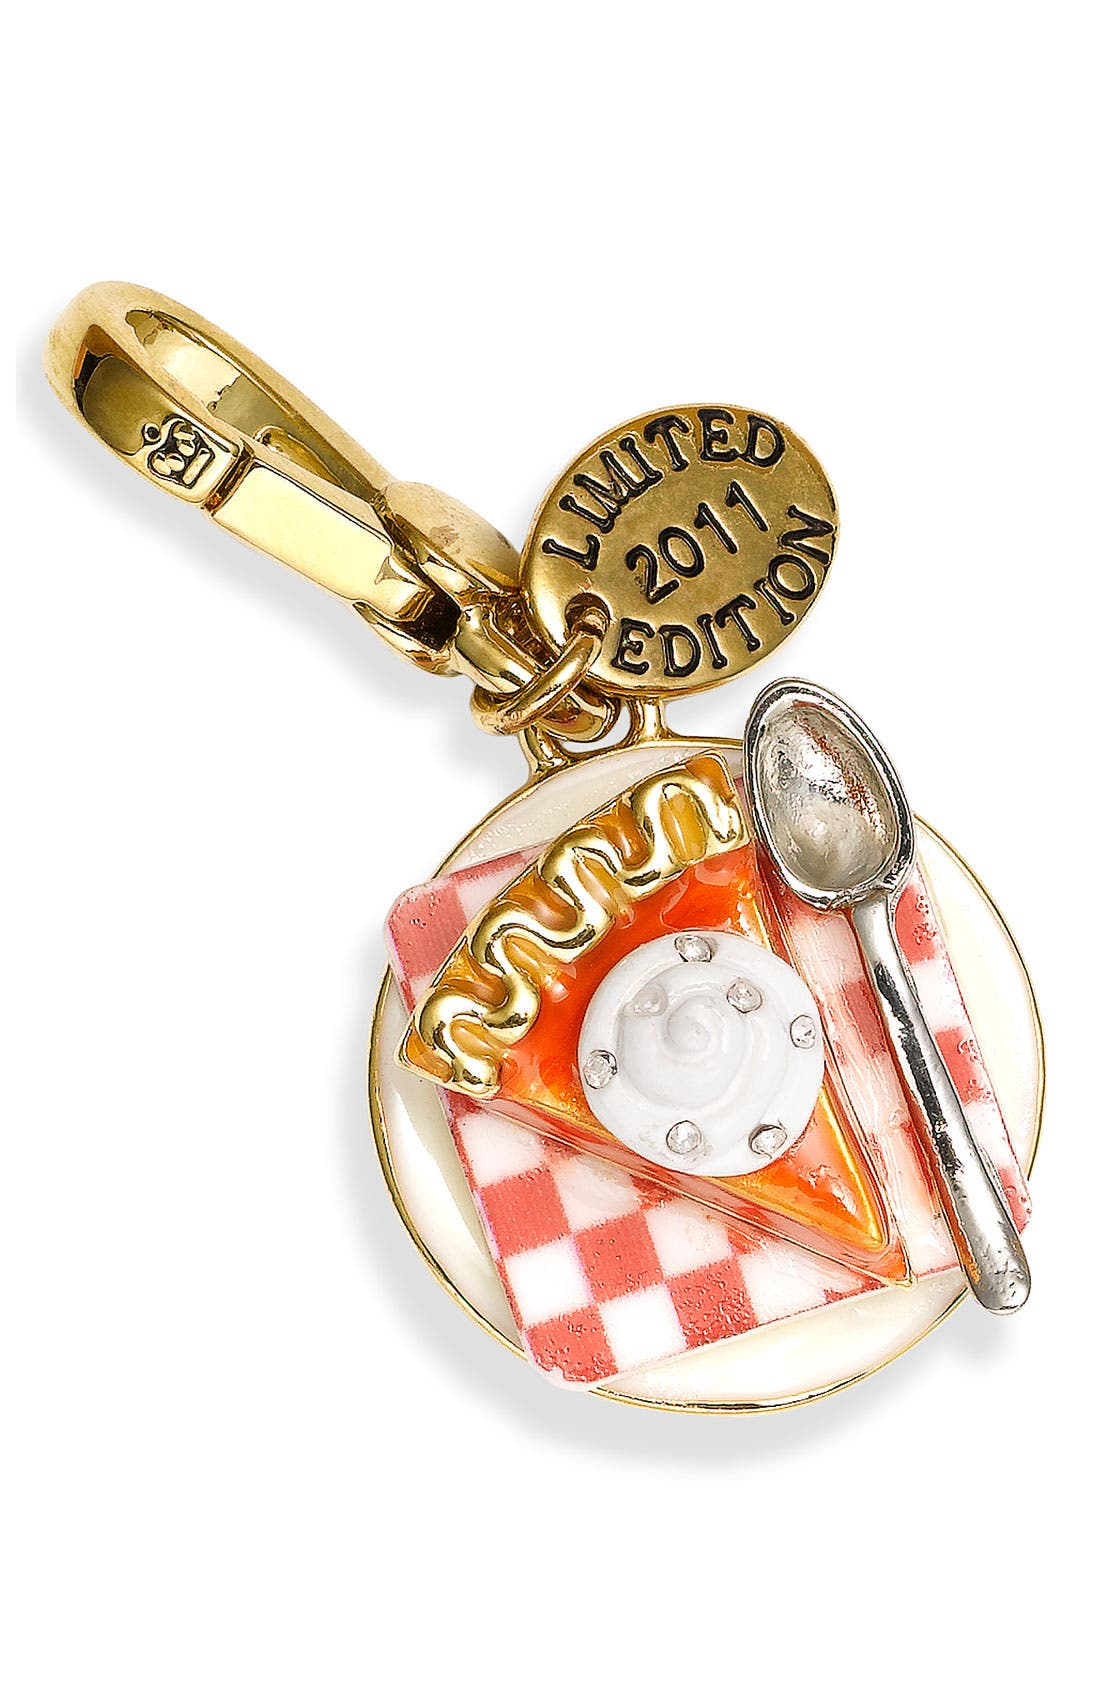 Alternate Image 1 Selected - Juicy Couture Pumpkin Pie Charm (Limited Edition)